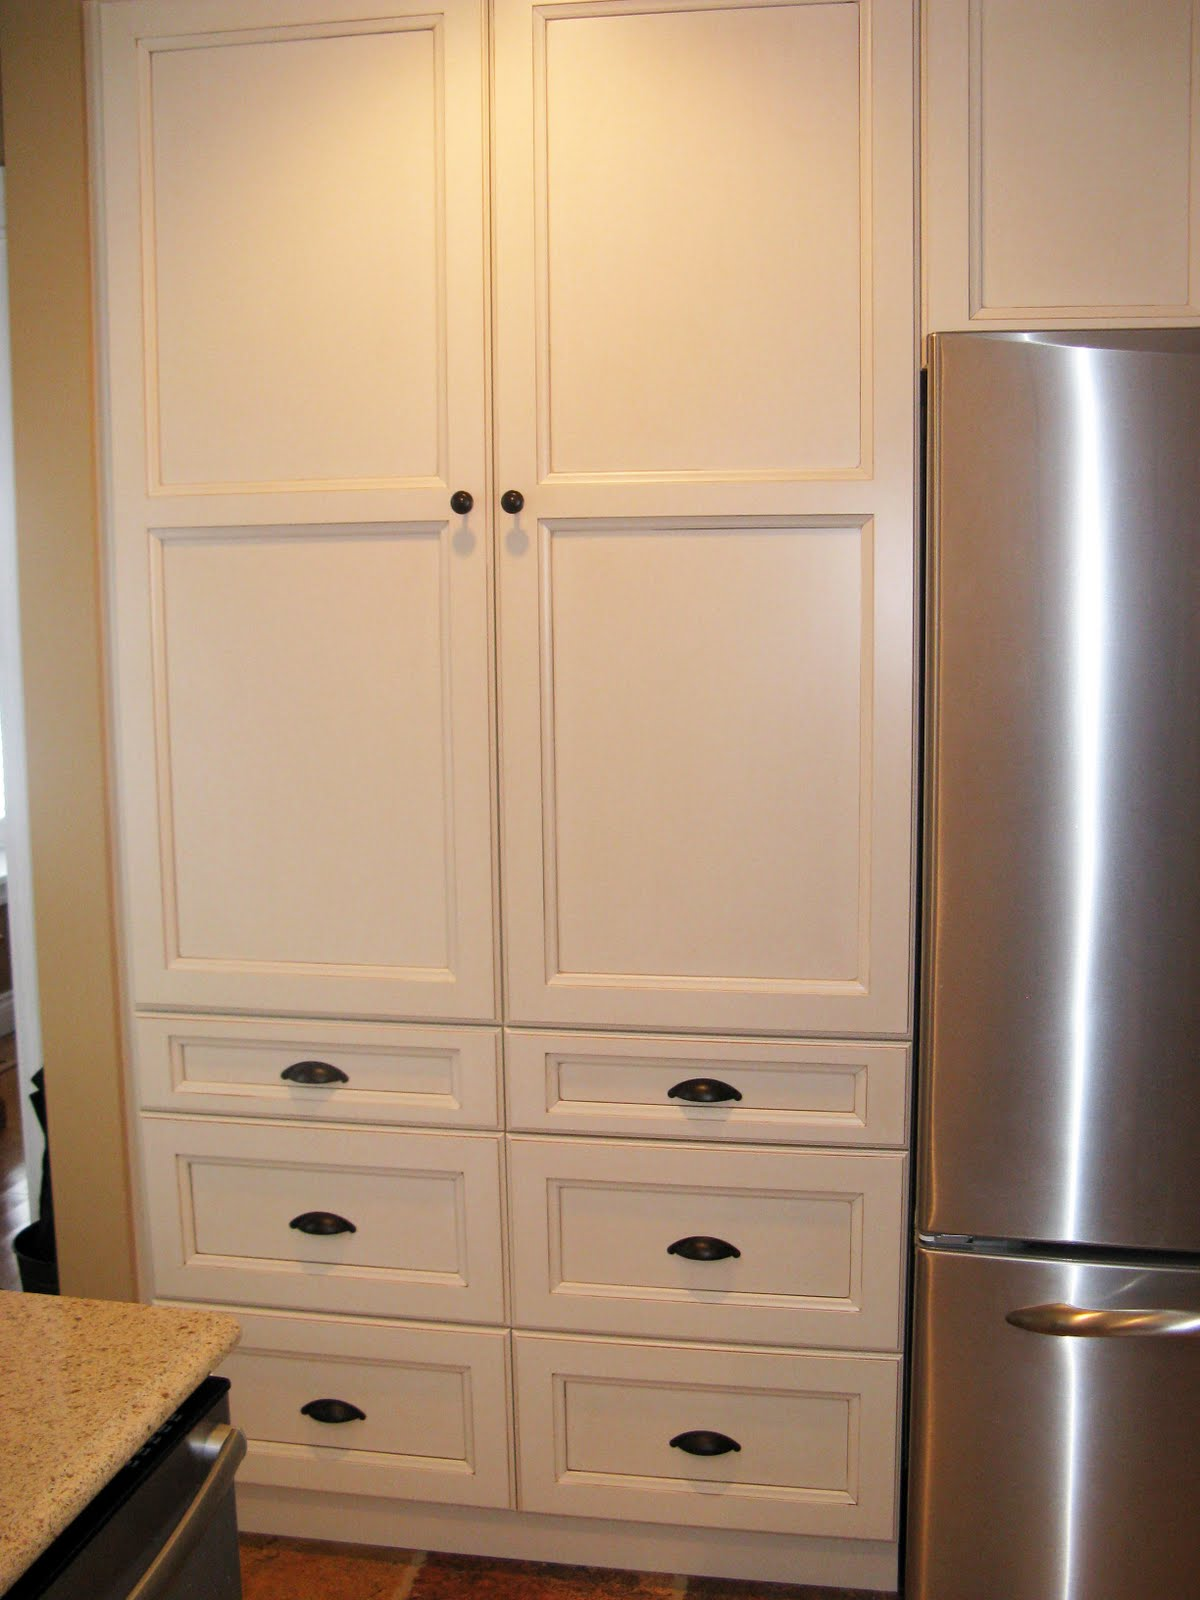 Five star photo gallery painted cabinets for 5 star kitchen cabinets